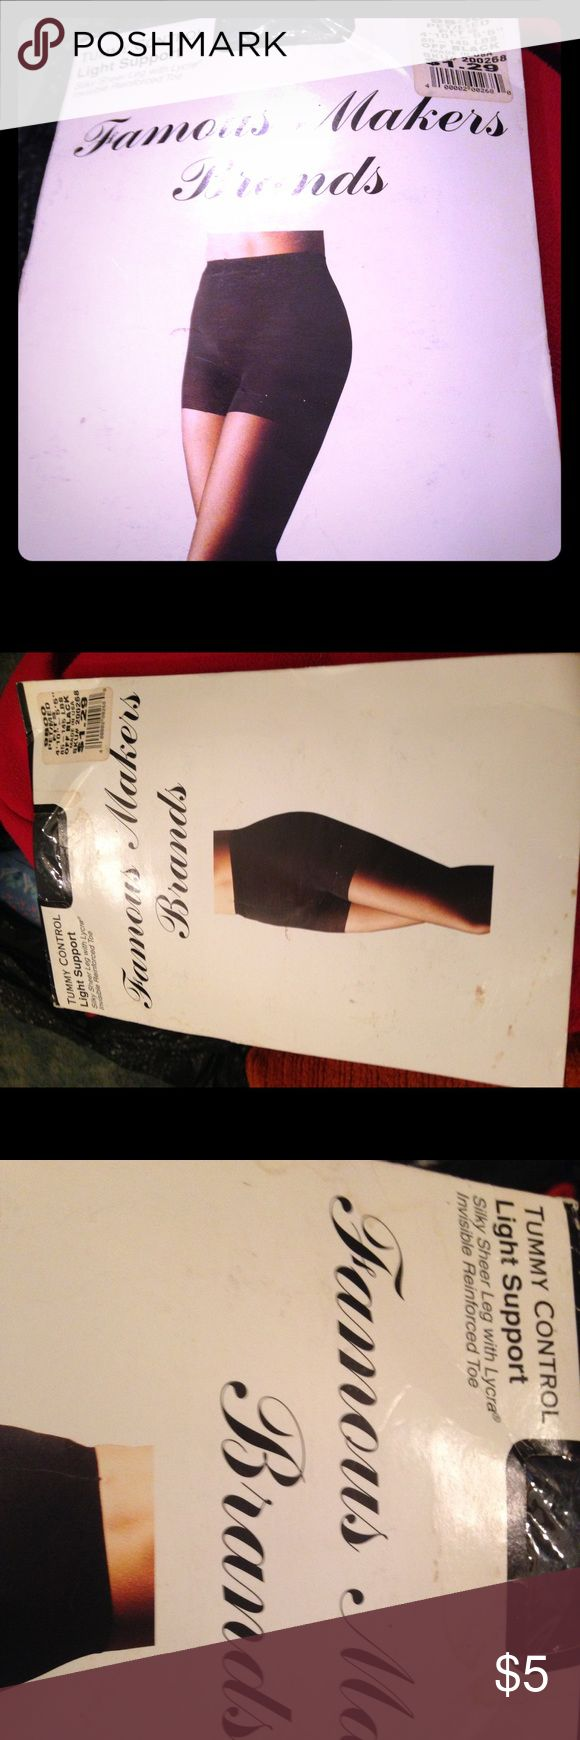 Tummy control sheet leg support stockings Tummy Control. Light support. Silky Sheer Leg with Lycra Invisible Reinforced Toe. Famous Makers Brand. Color: Off Black. Petite/ Medium fits 4'10-5'5 85-145 lbs. Dropping price on request. The lowest I can sell this for on here is $3, so I can NOT sell this at the original price of $1.29. Famous Makers Brand Accessories Hosiery & Socks